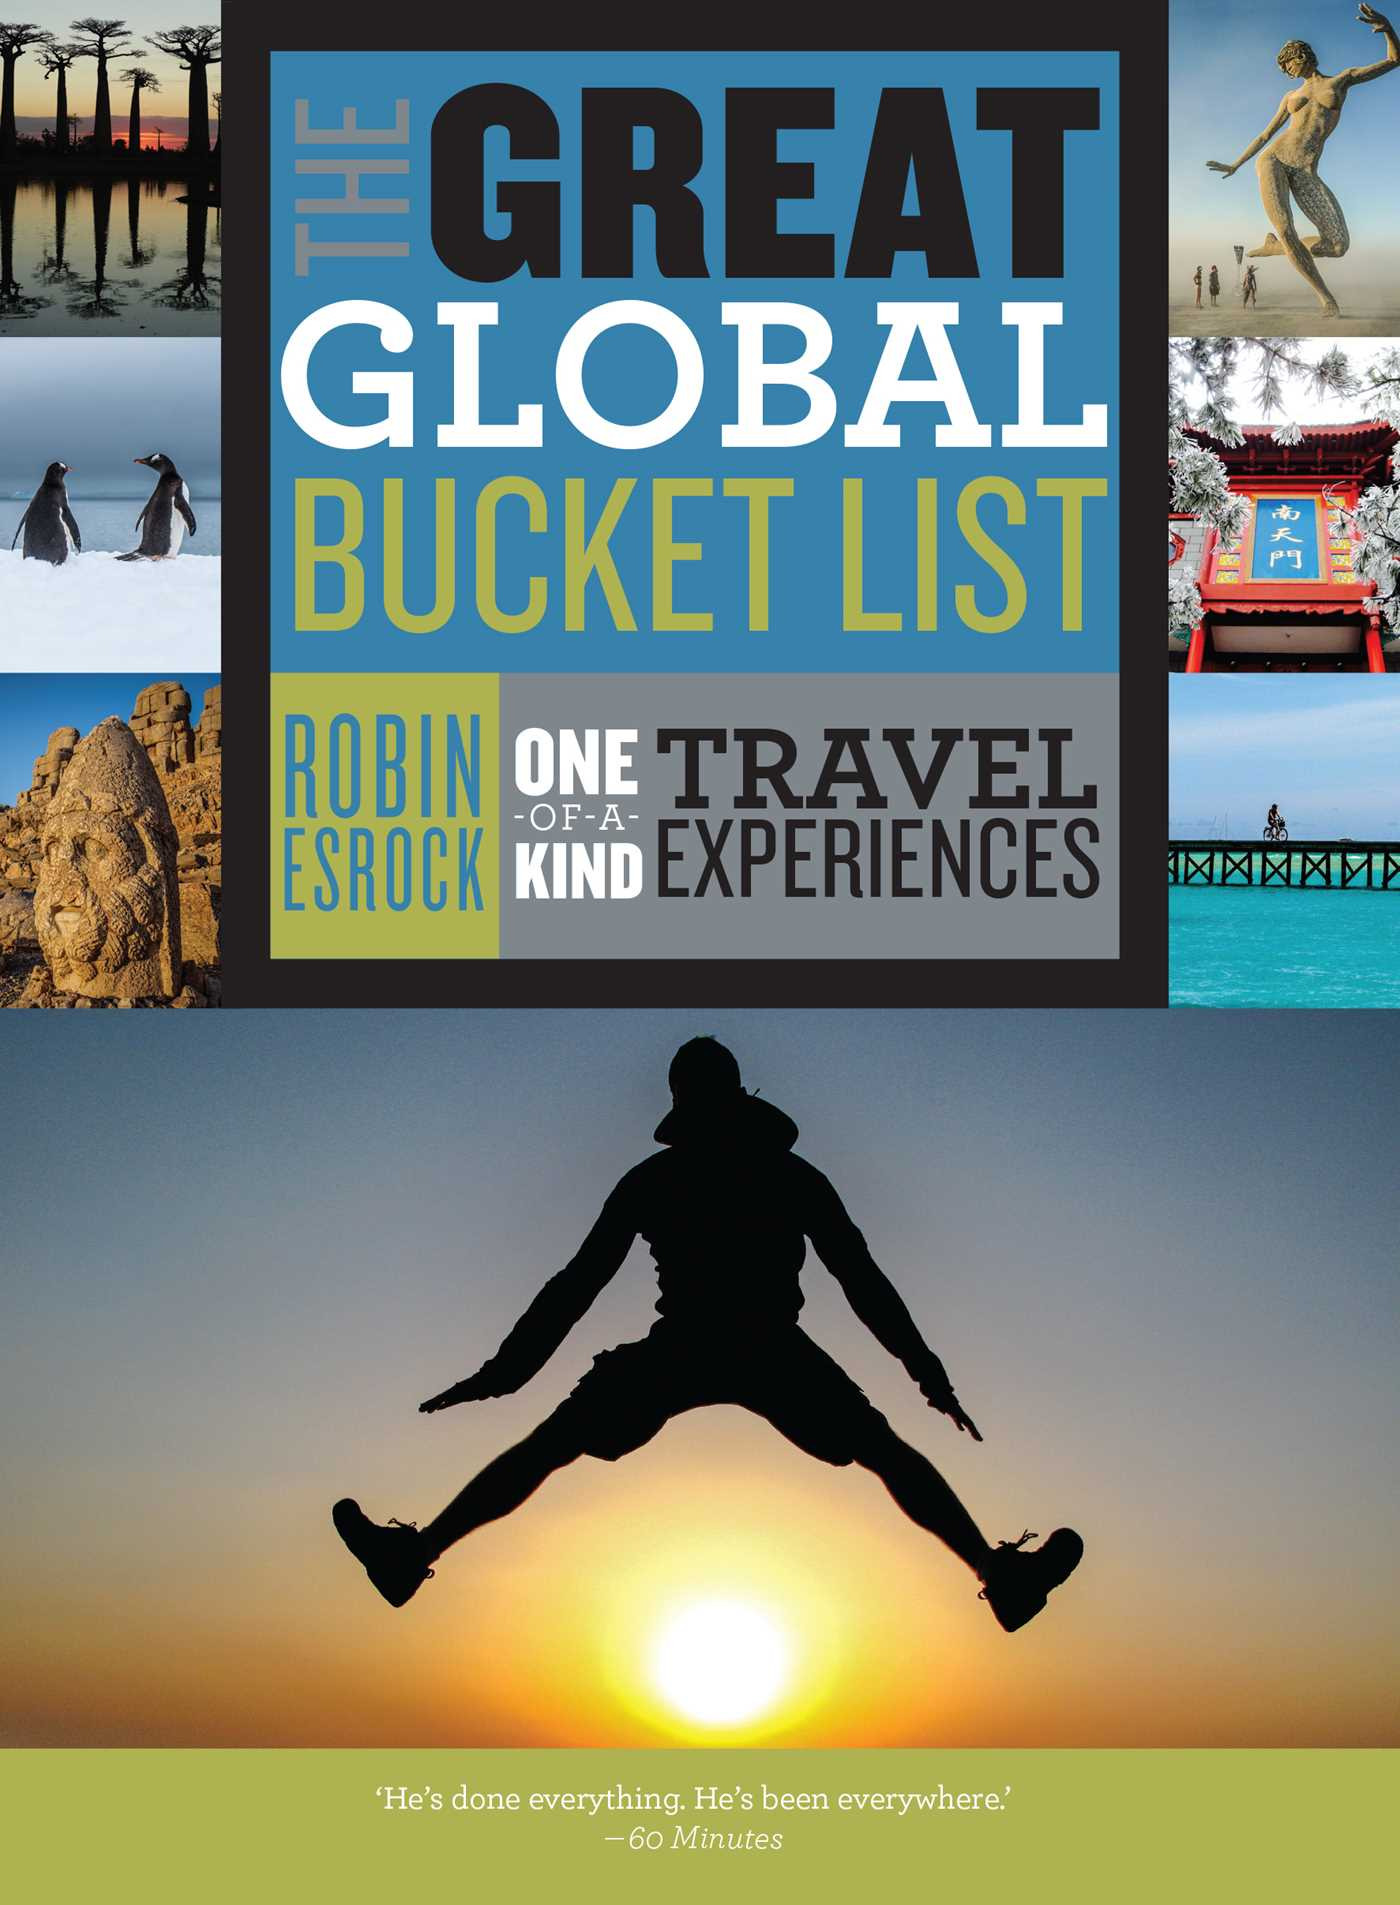 Great Global Bucket List by Robin Esrock, ISBN: 9781925475333